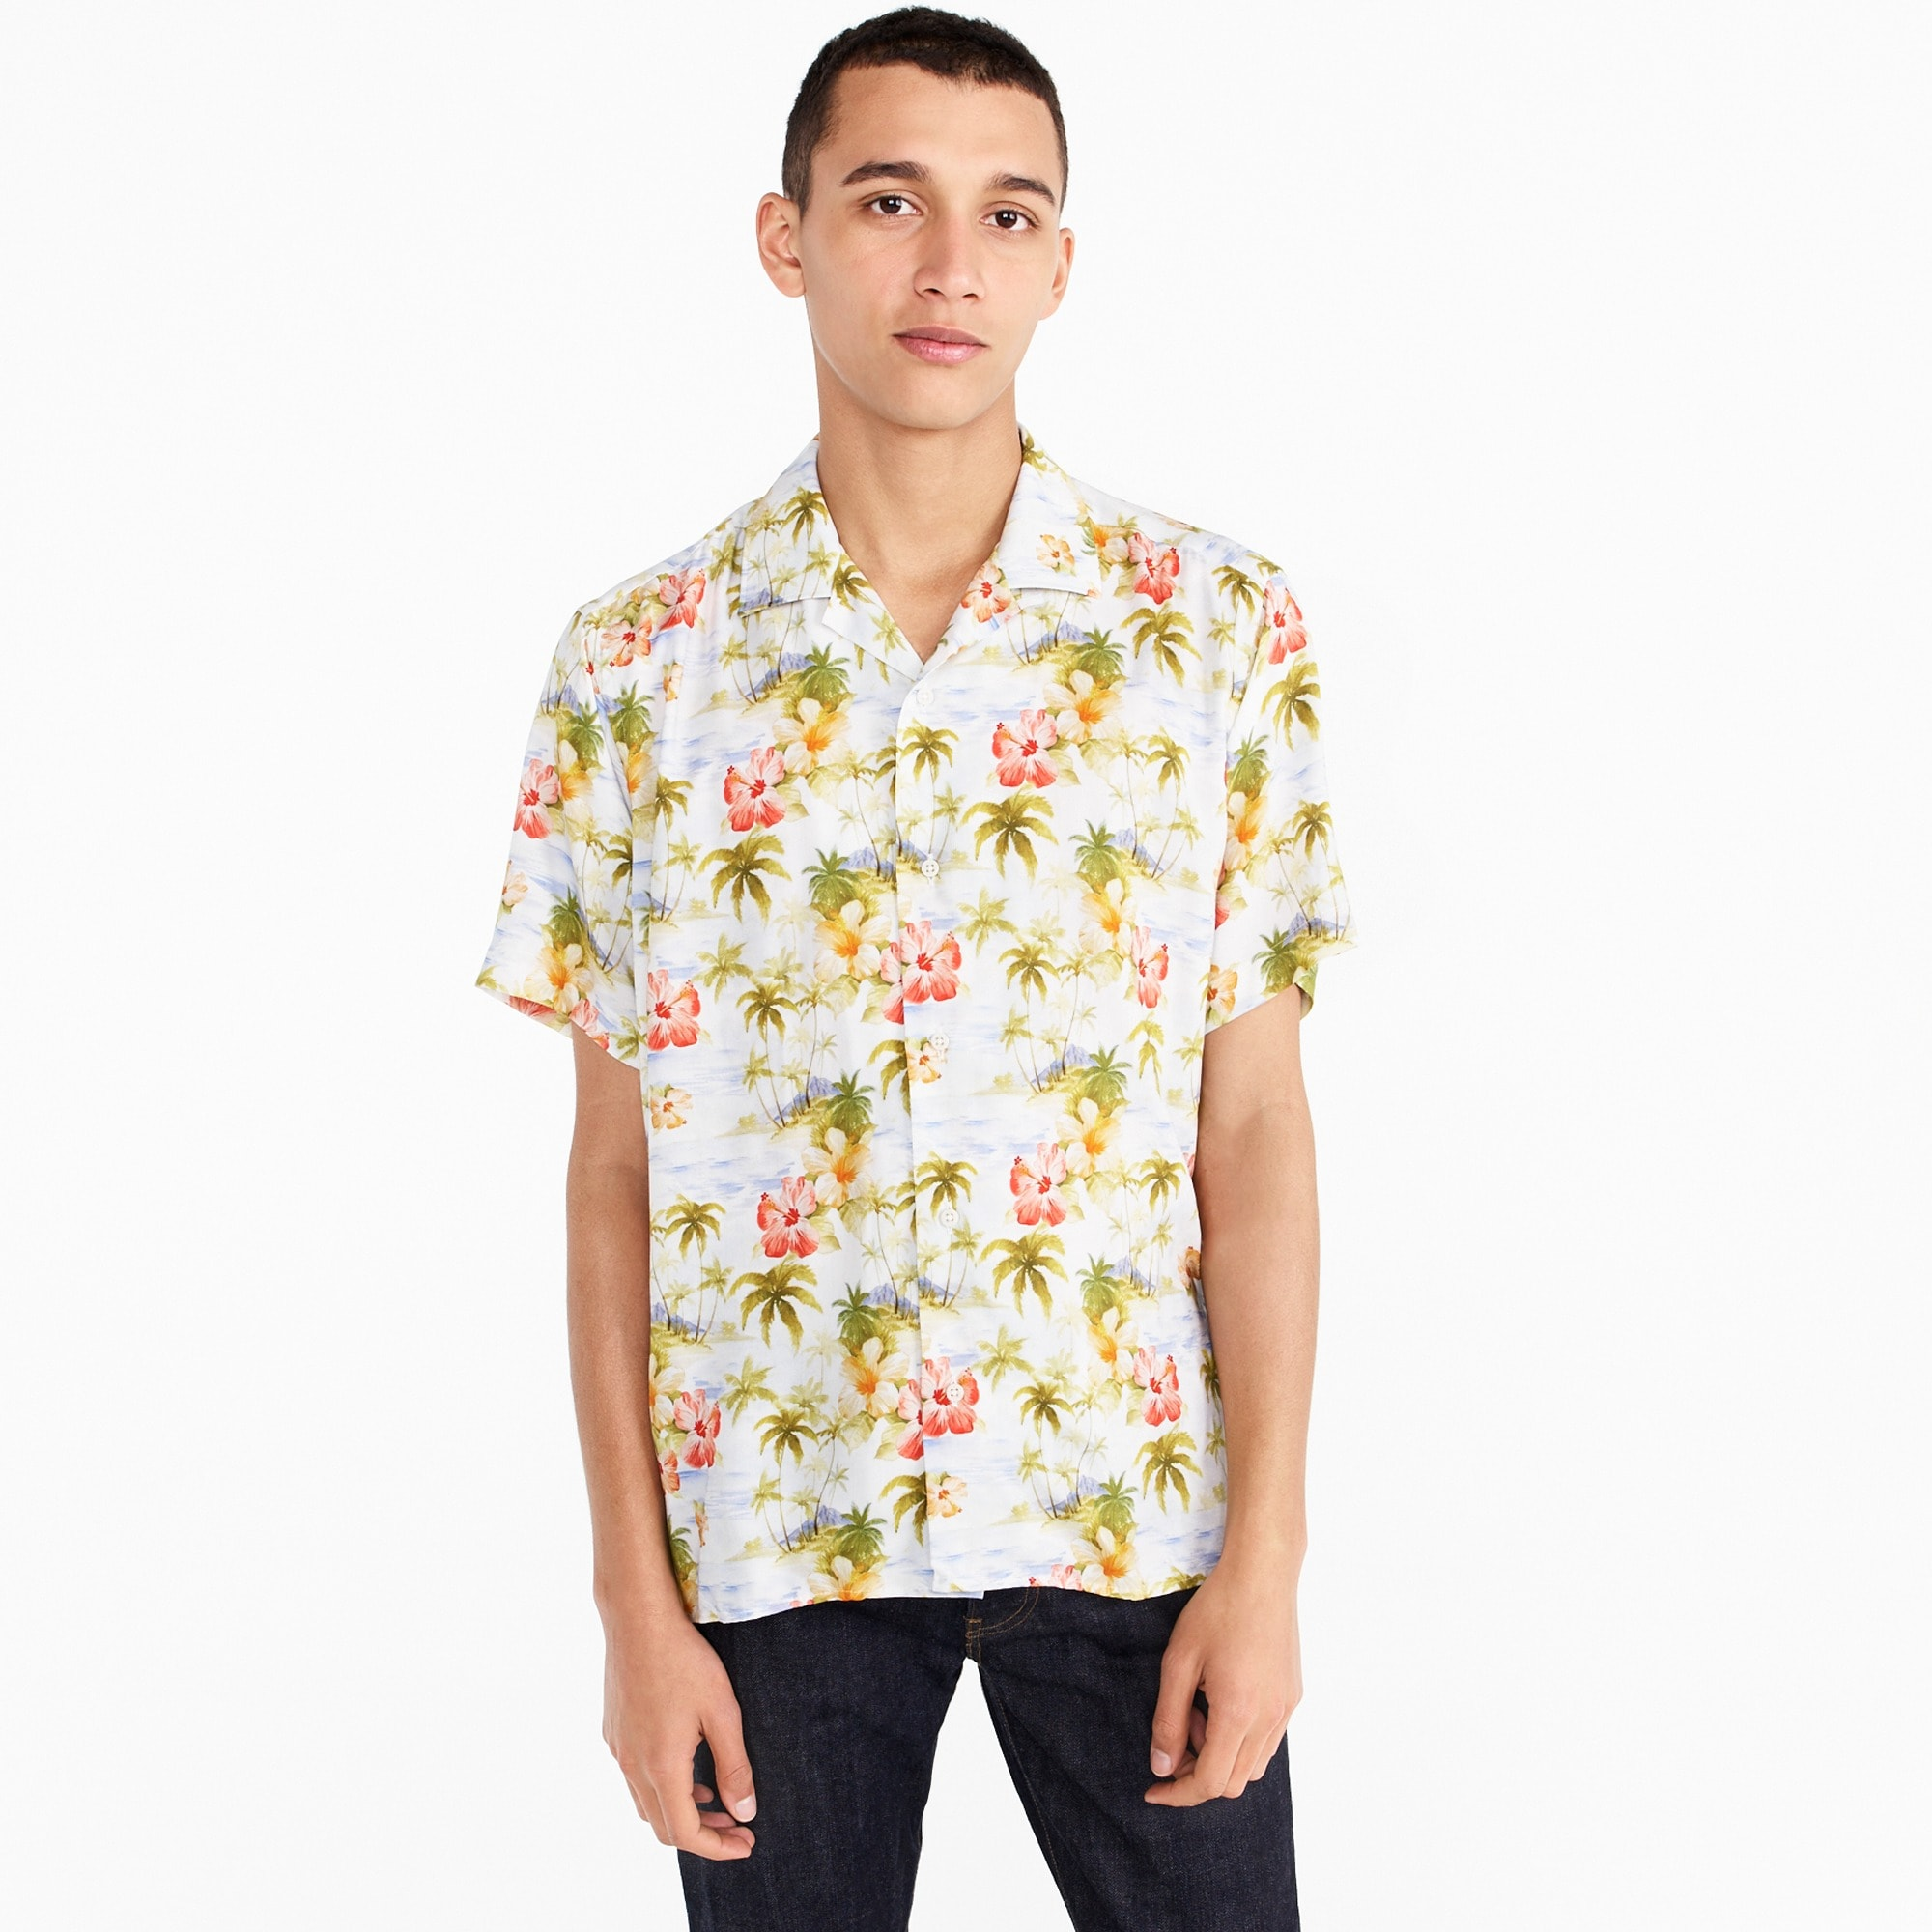 Gitman Vintage™ for J.Crew short-sleeve shirt in floral print